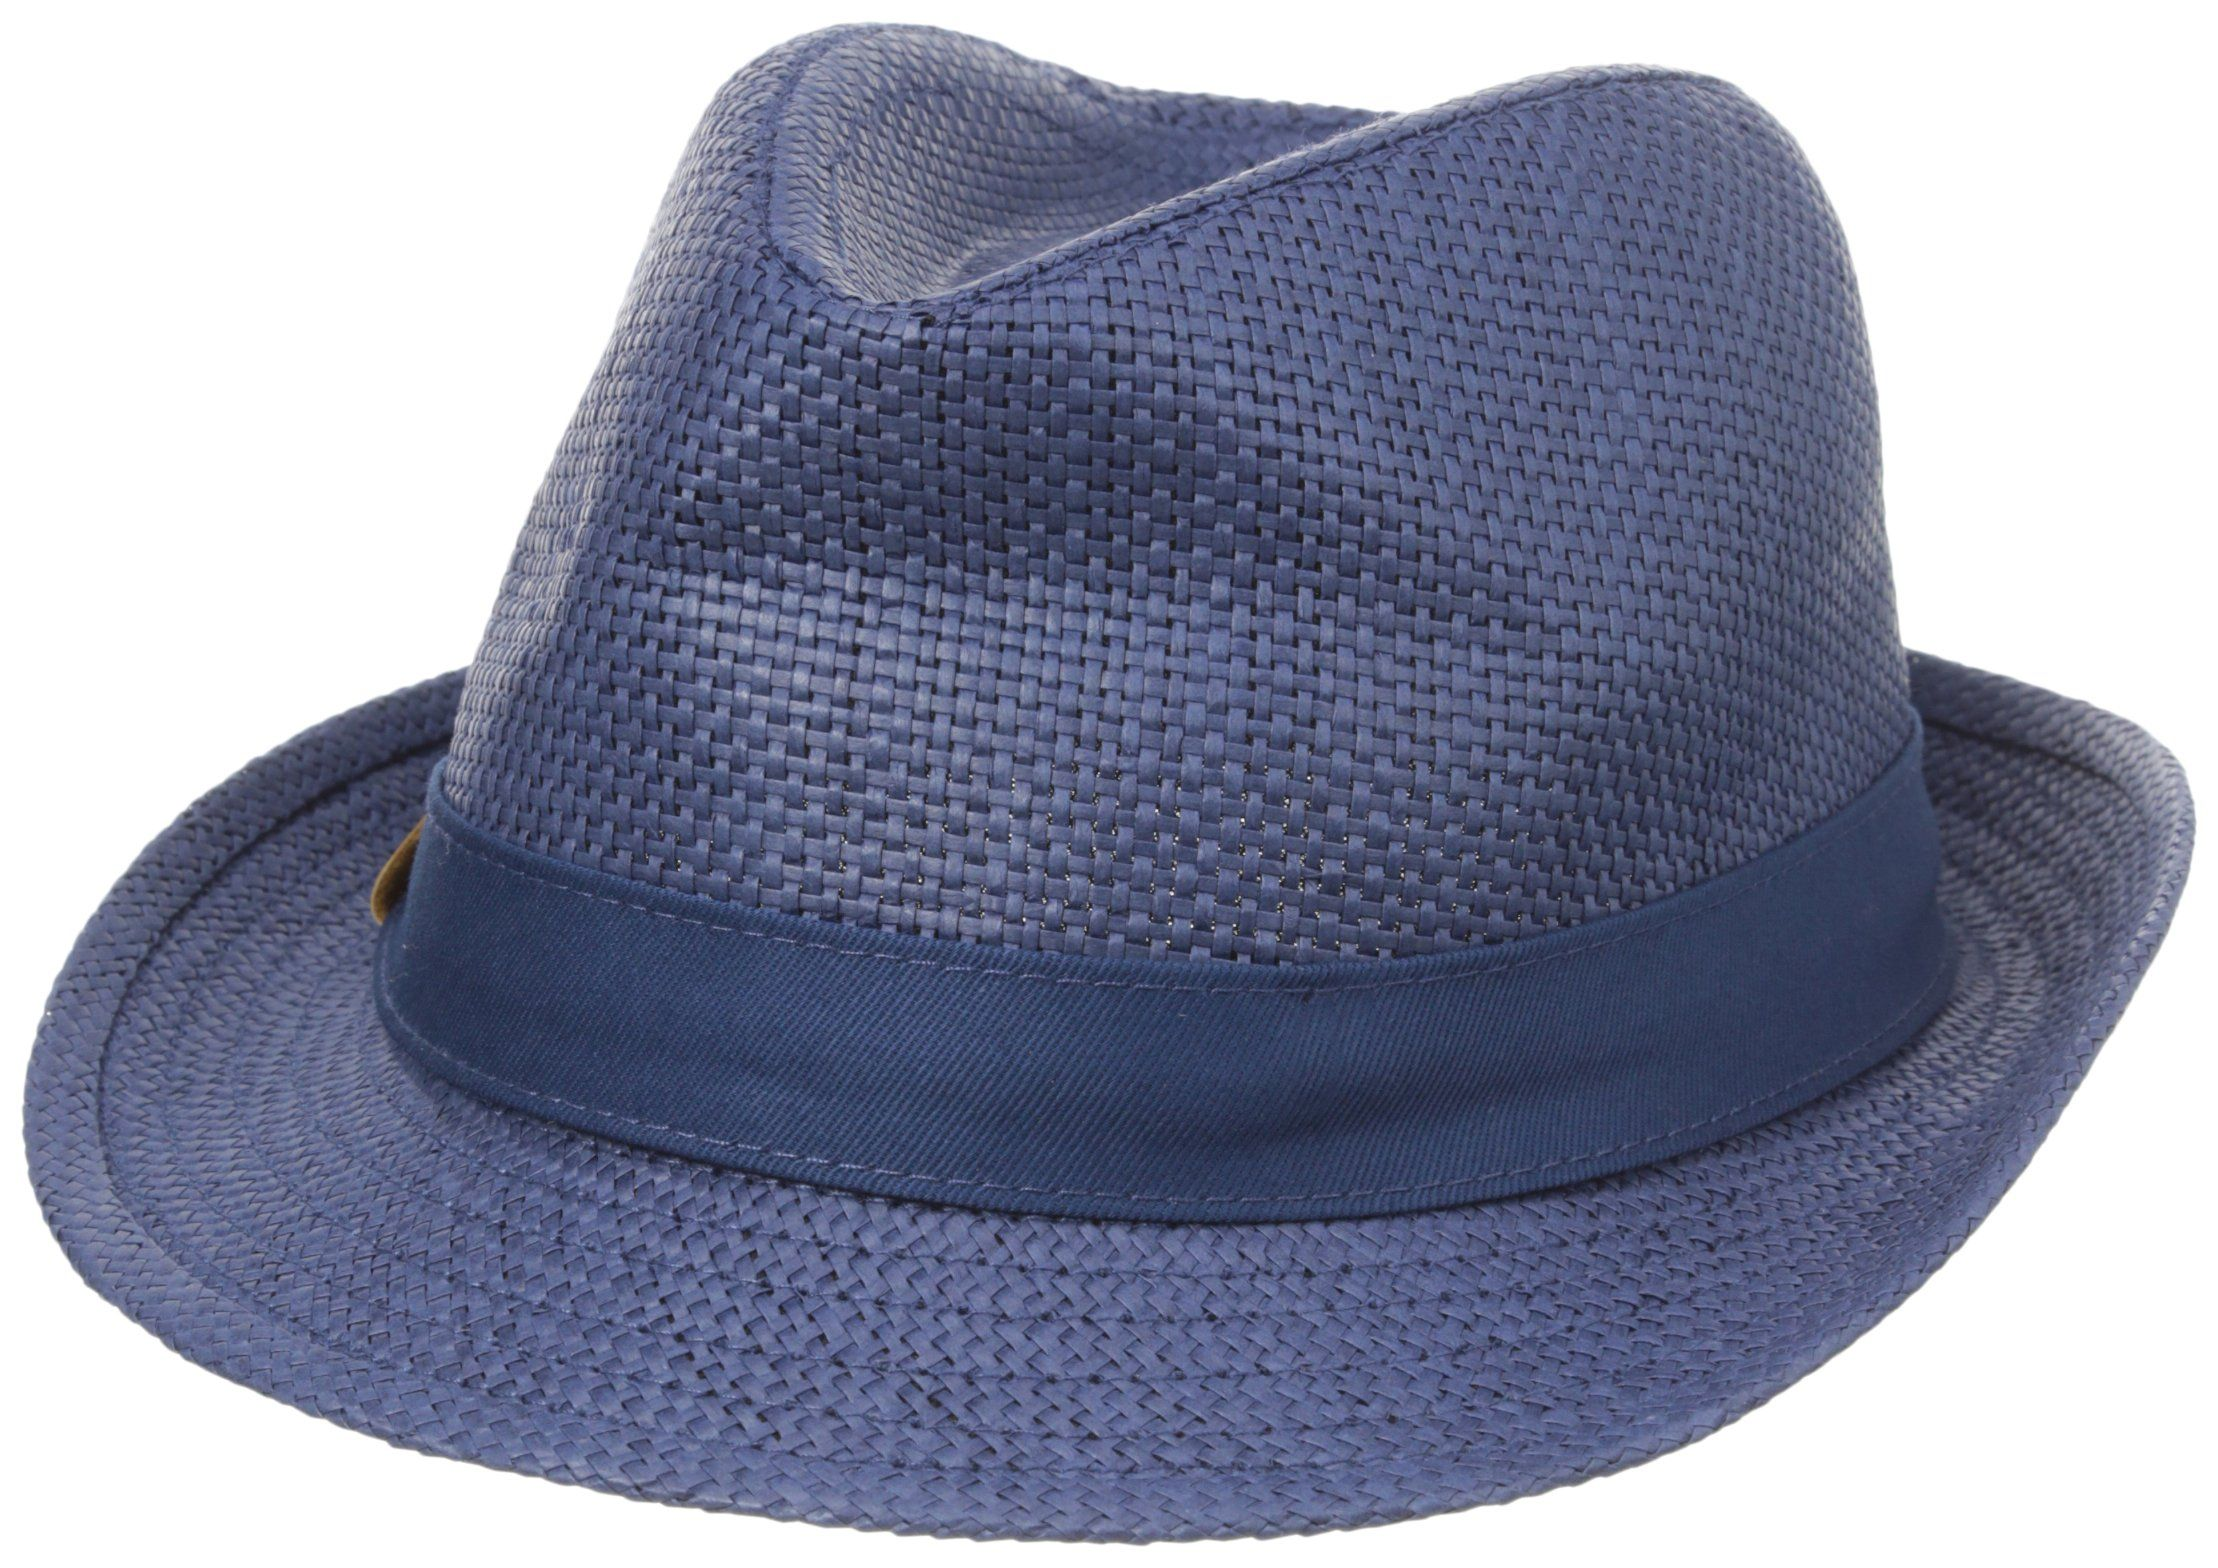 Straw hat Straw hat for toddler boy with navy and white